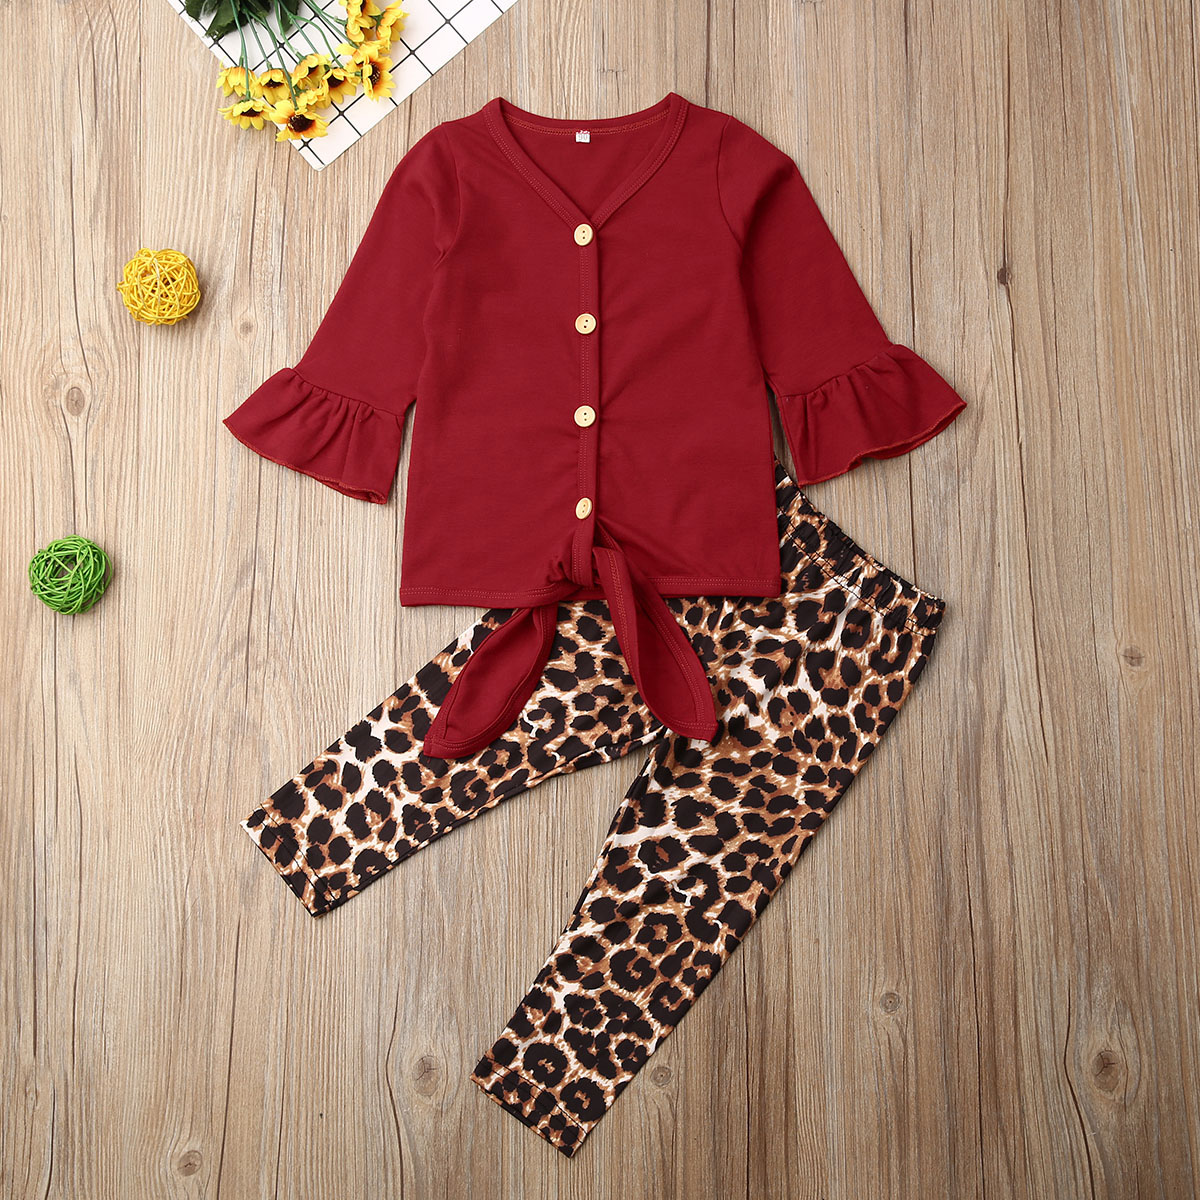 Pudcoco Autumn Toddler Baby Girl Clothes Solid Color Flare Long Sleeve Button Tops Leopard Print Long Pants 2Pcs Outfits Set